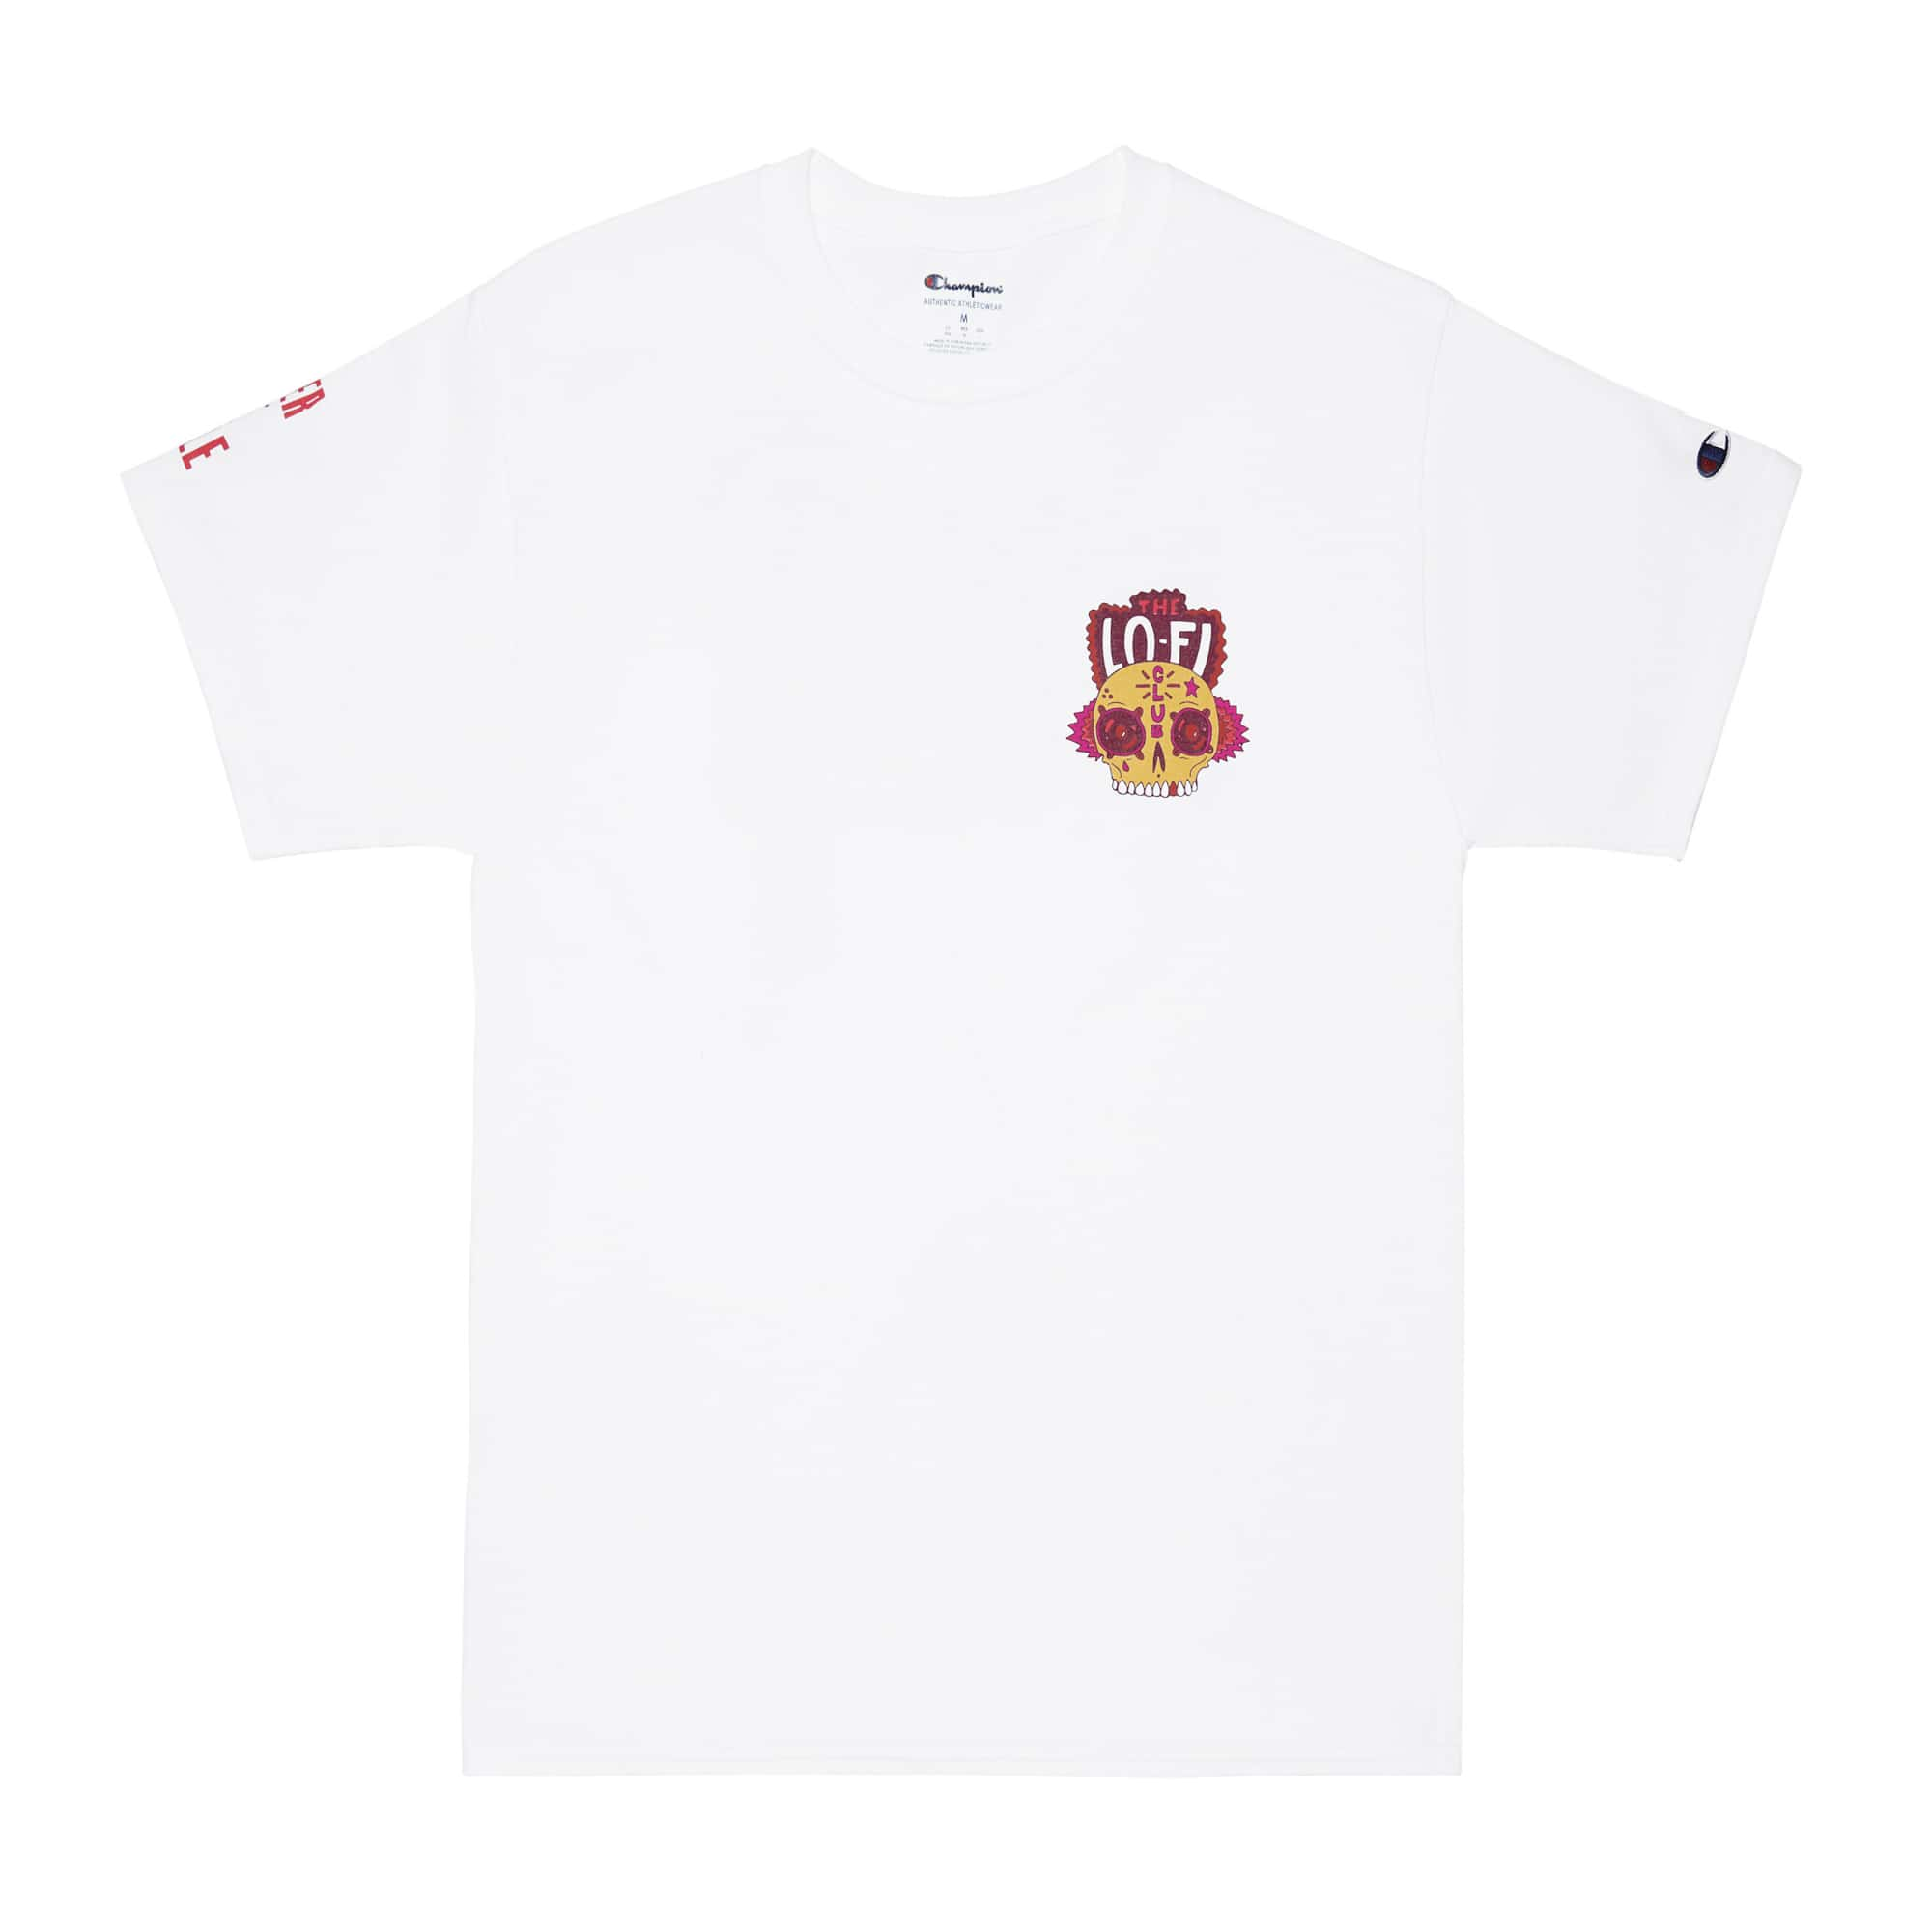 Foster The People x Champion 'City Of Angles' Tee